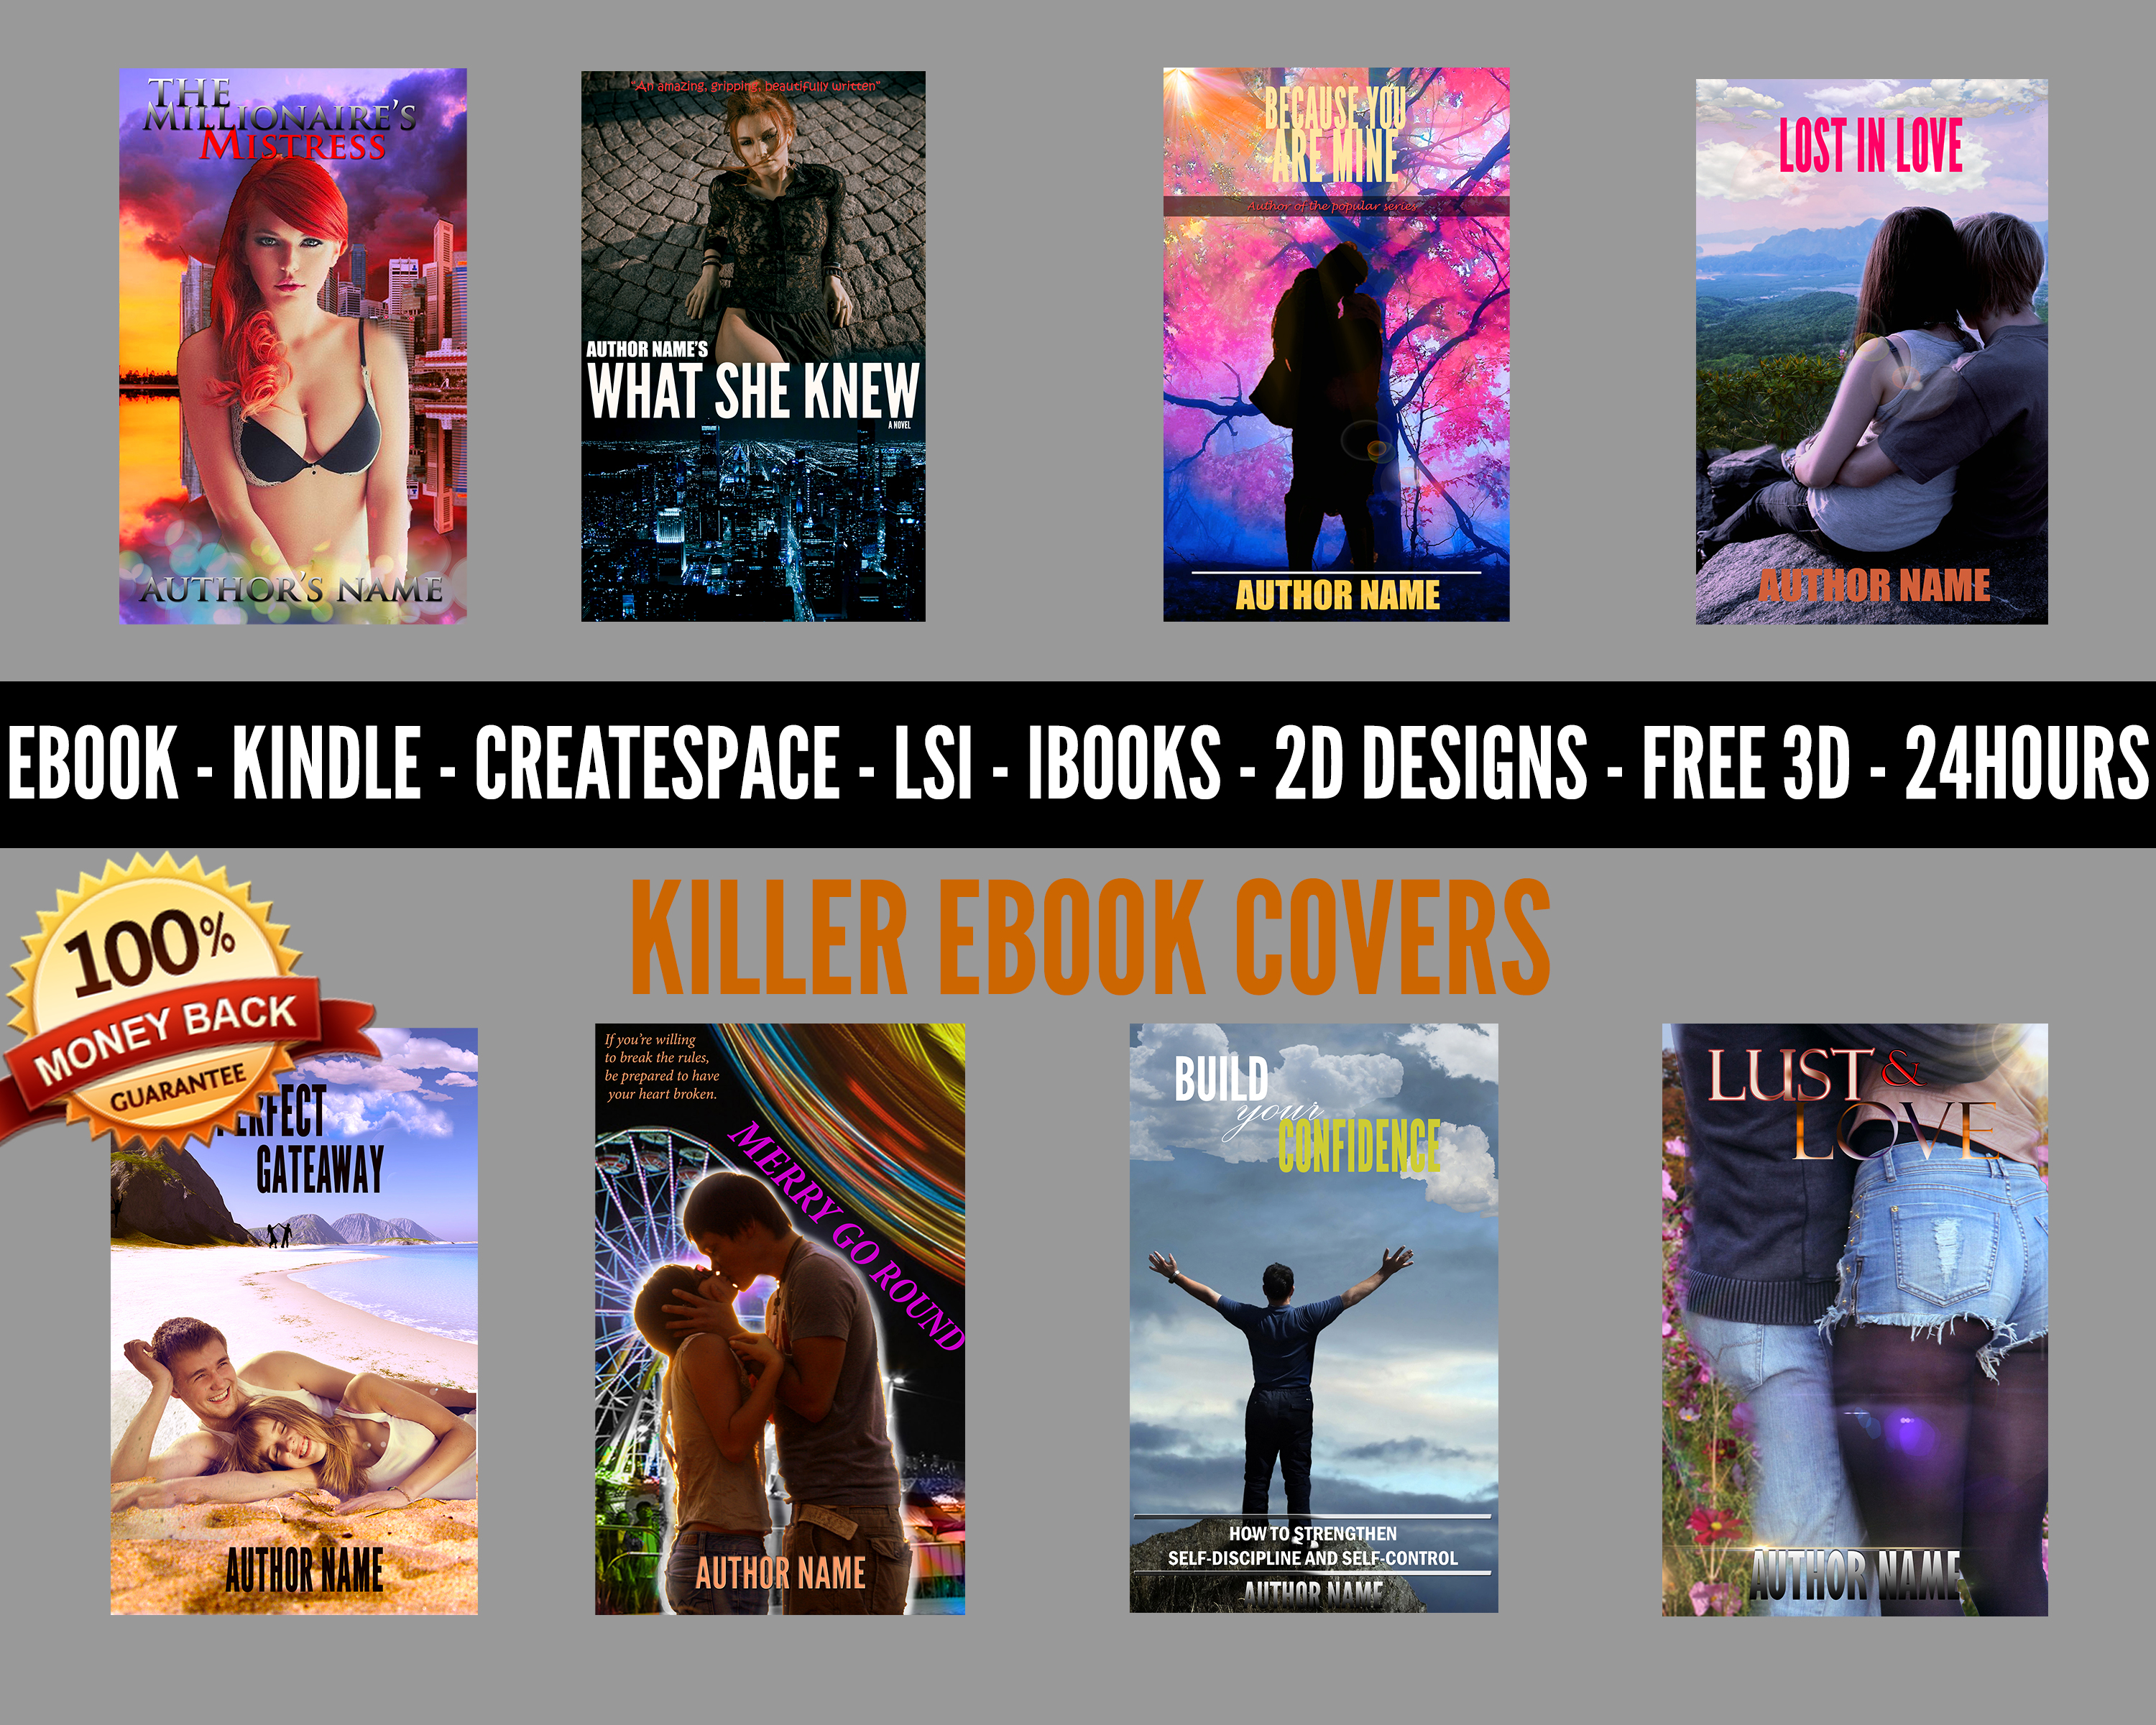 design a Professional Ebook cover, Kindle, createspace